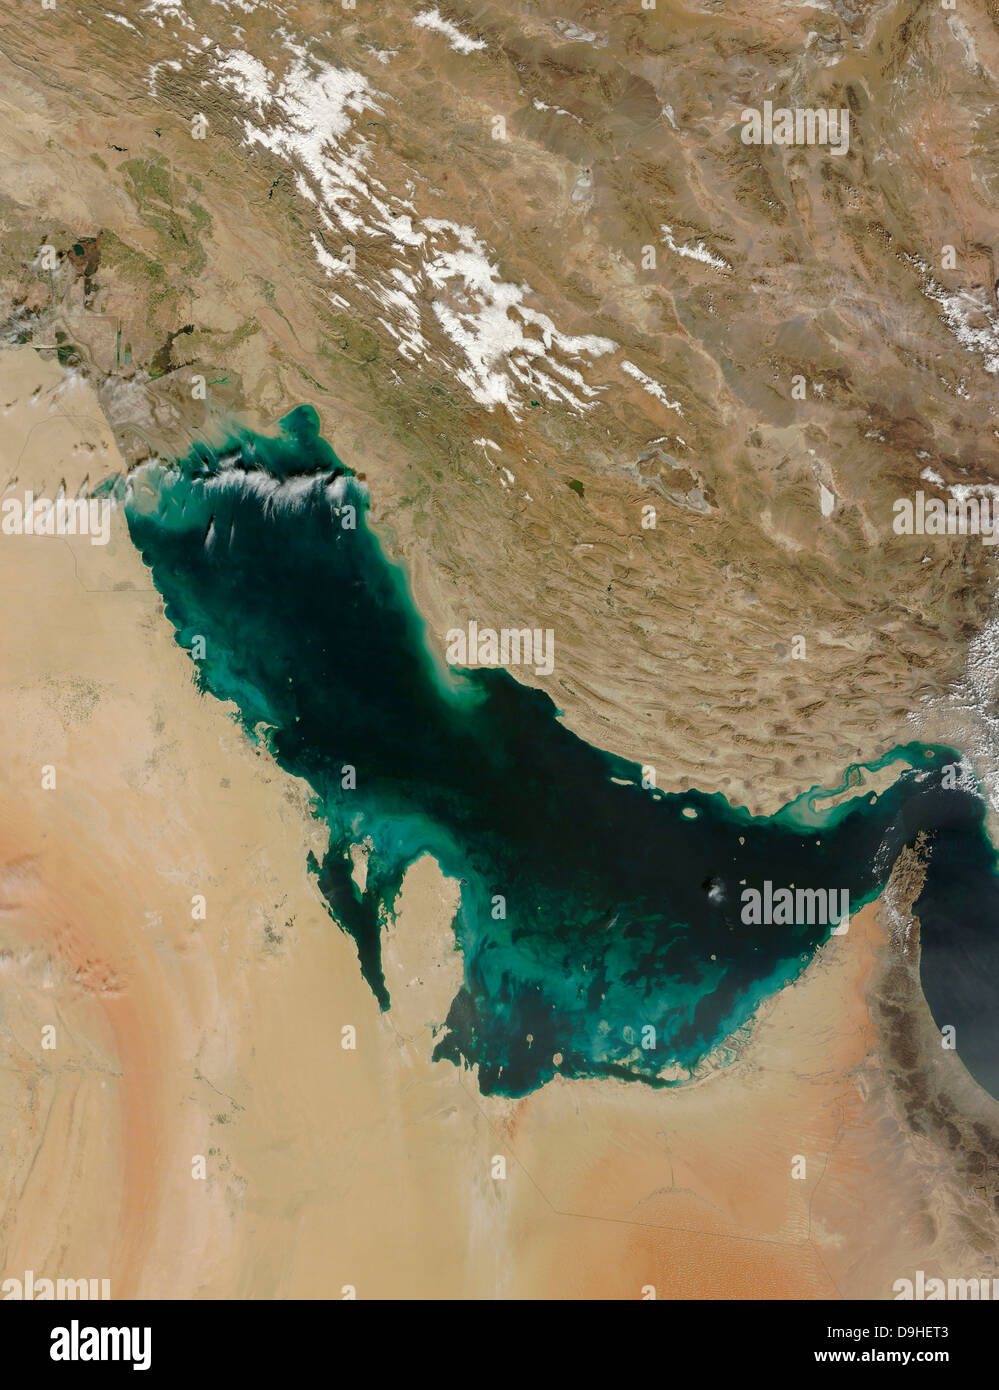 Satellite view of the Persian Gulf. - Stock Image